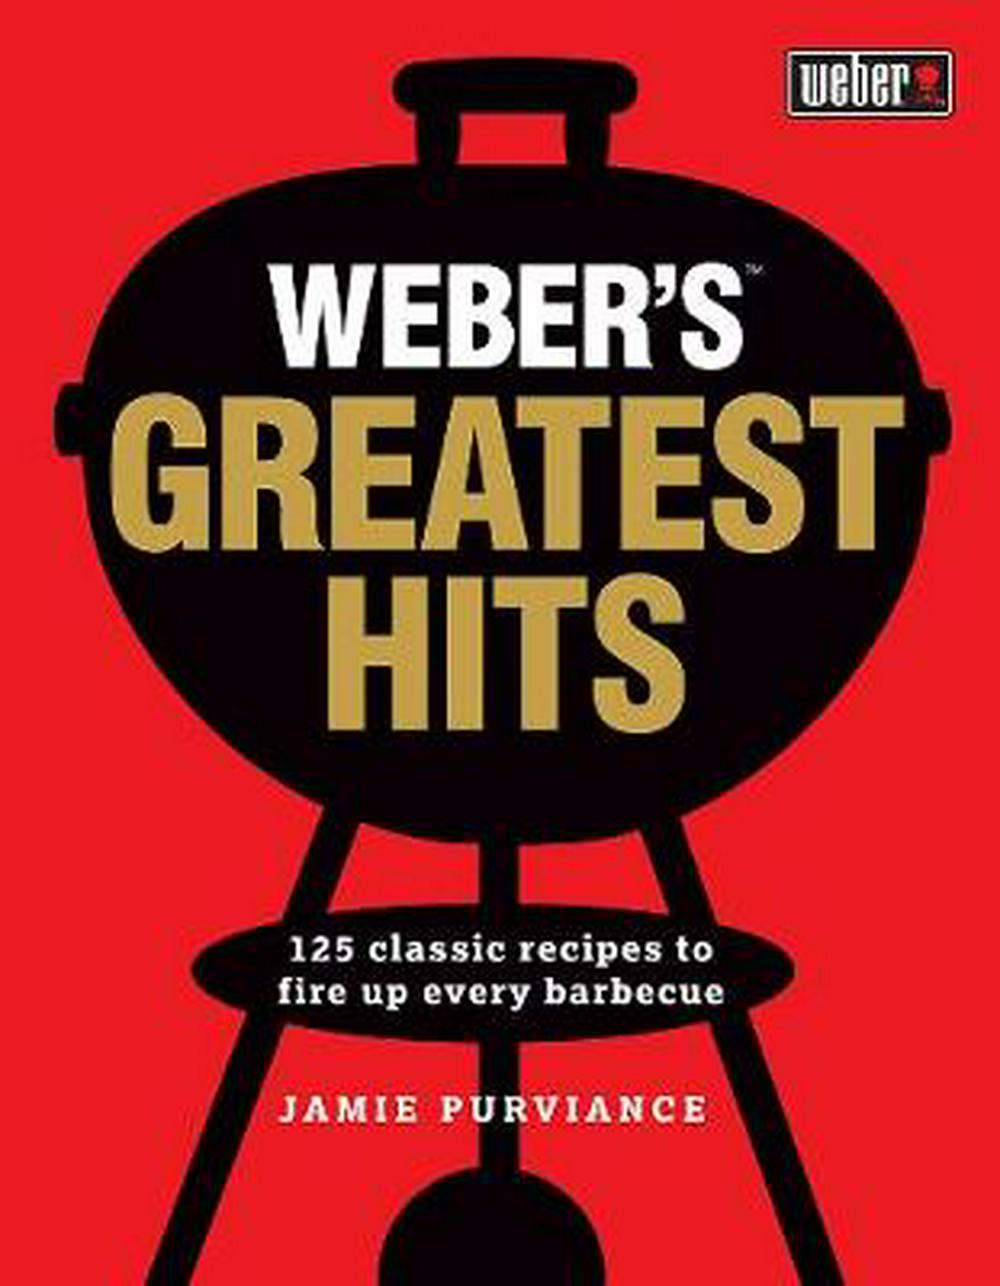 Weber's Greatest Hits125 classic recipes to fire up every barbecue